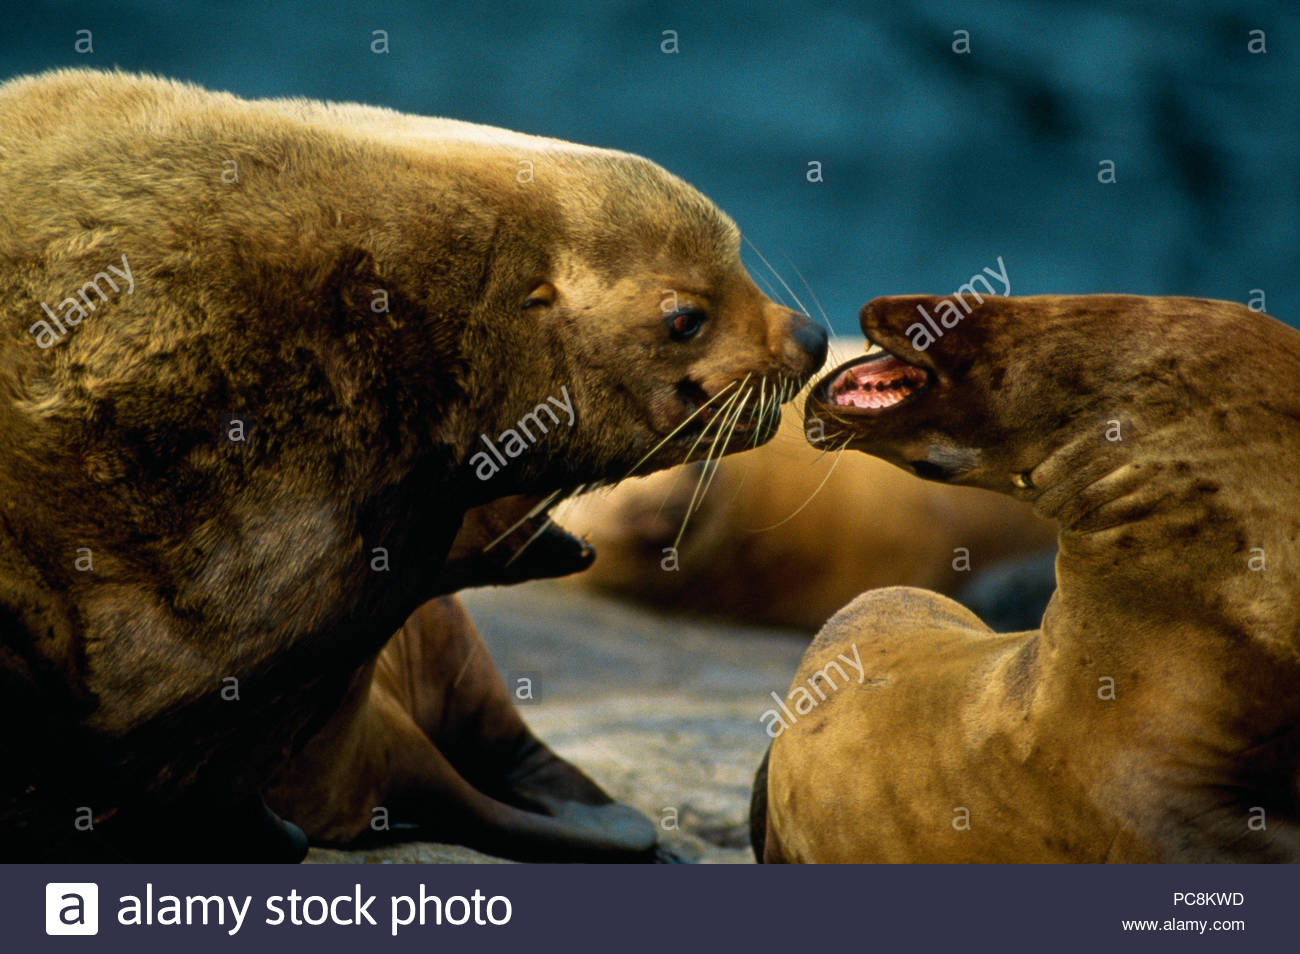 Two Steller sea lions yell as a precursor to mating. - Stock Image